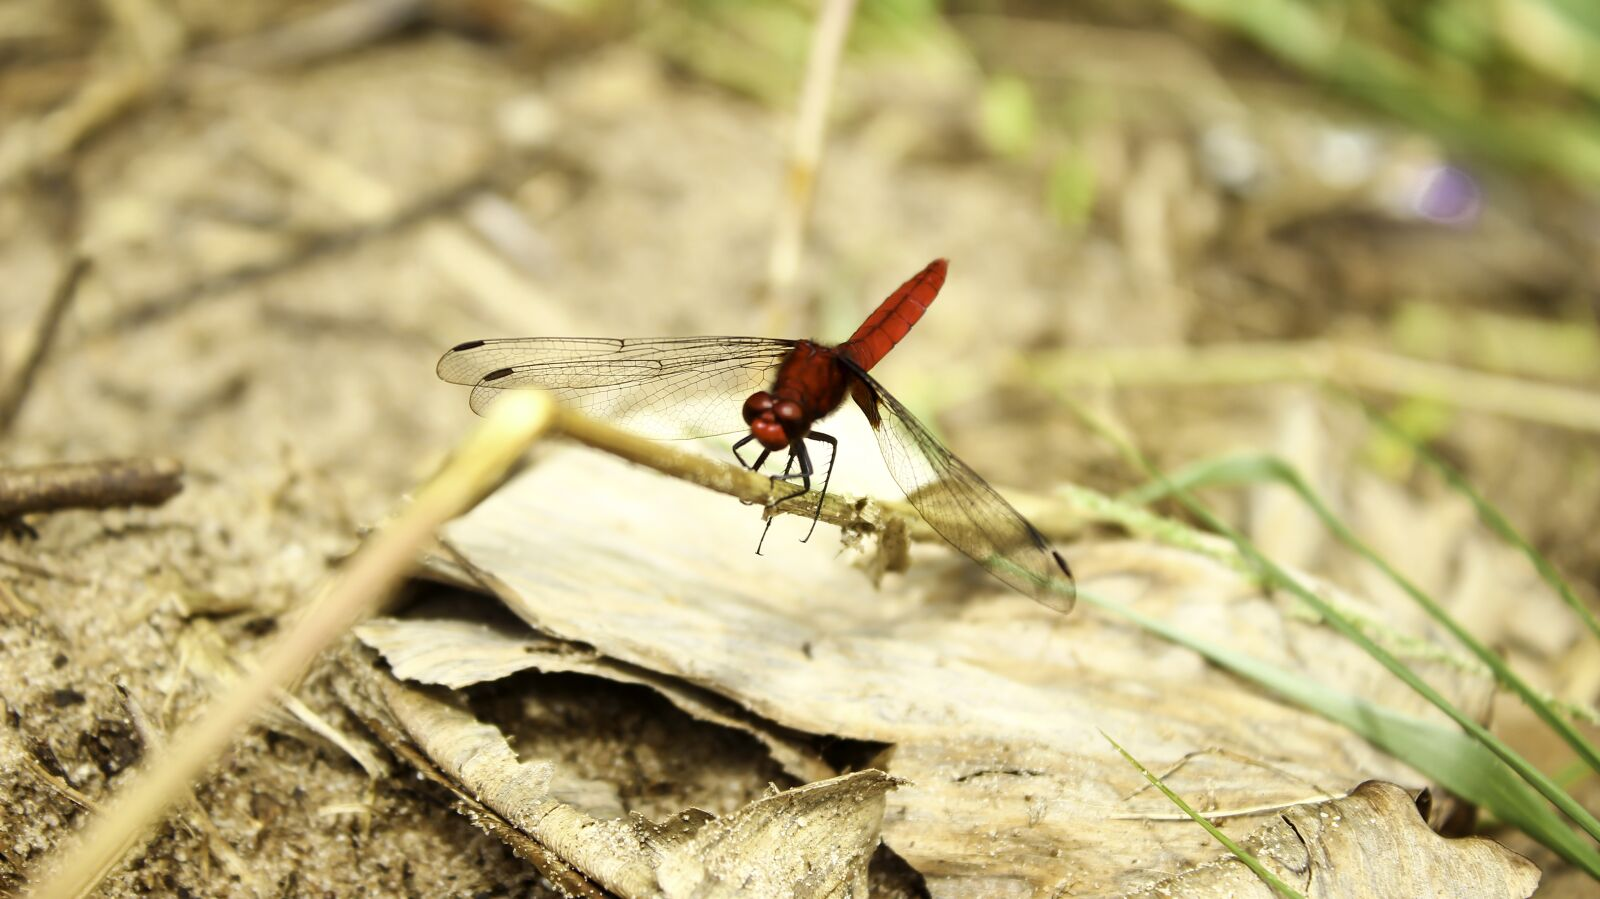 """Canon EOS 600D (Rebel EOS T3i / EOS Kiss X5) sample photo. """"Dragonfly, animal, insect"""" photography"""